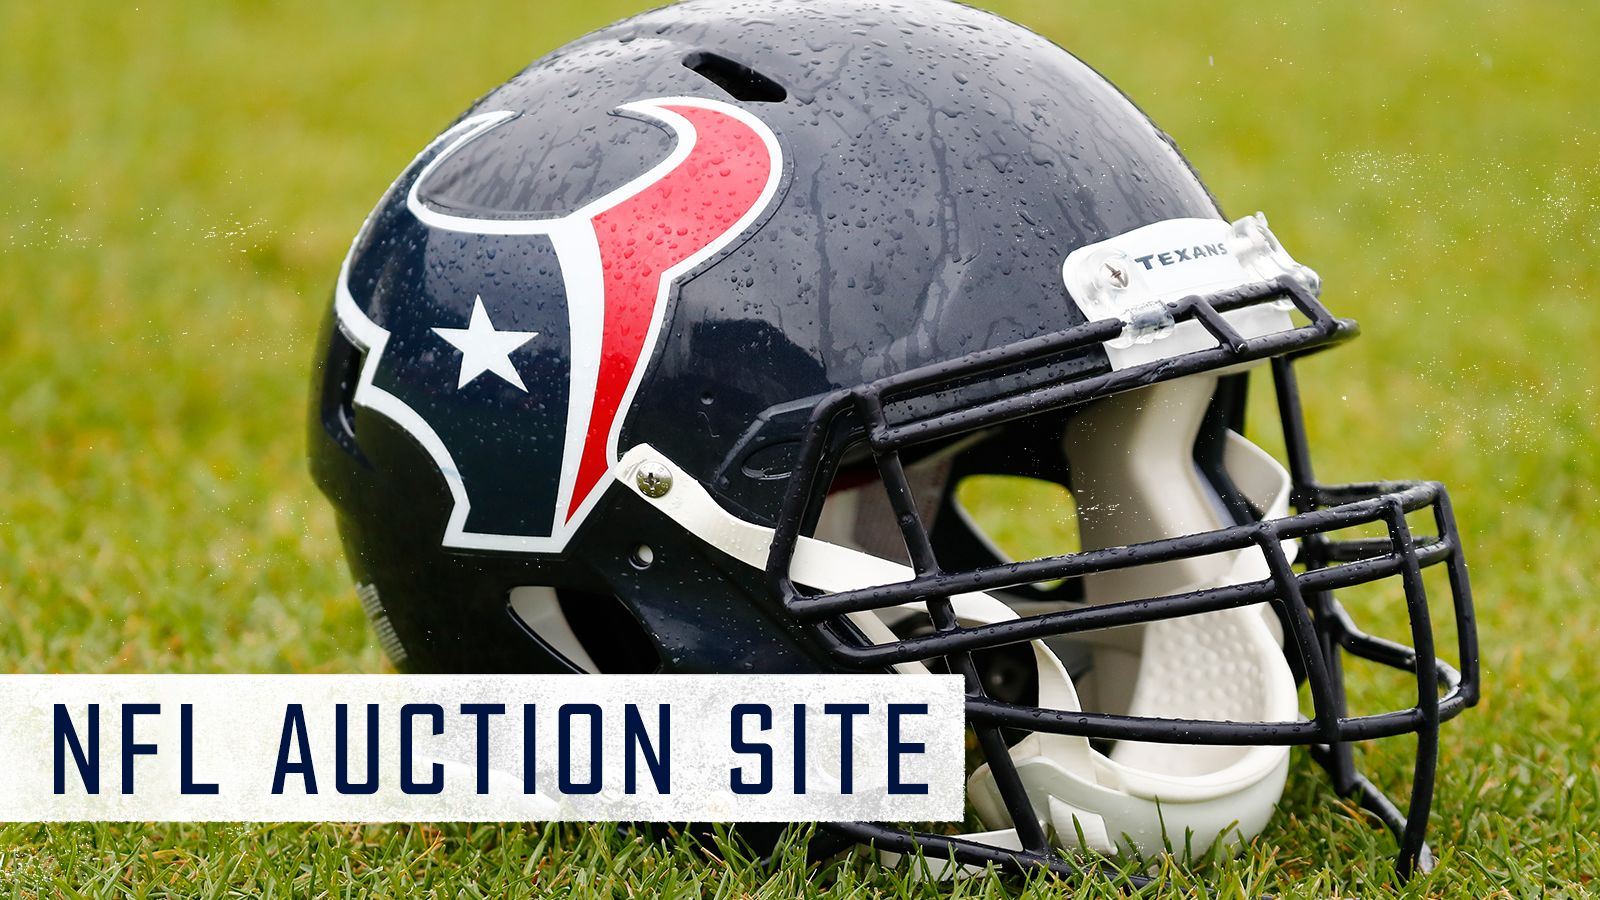 NFL Auction Site